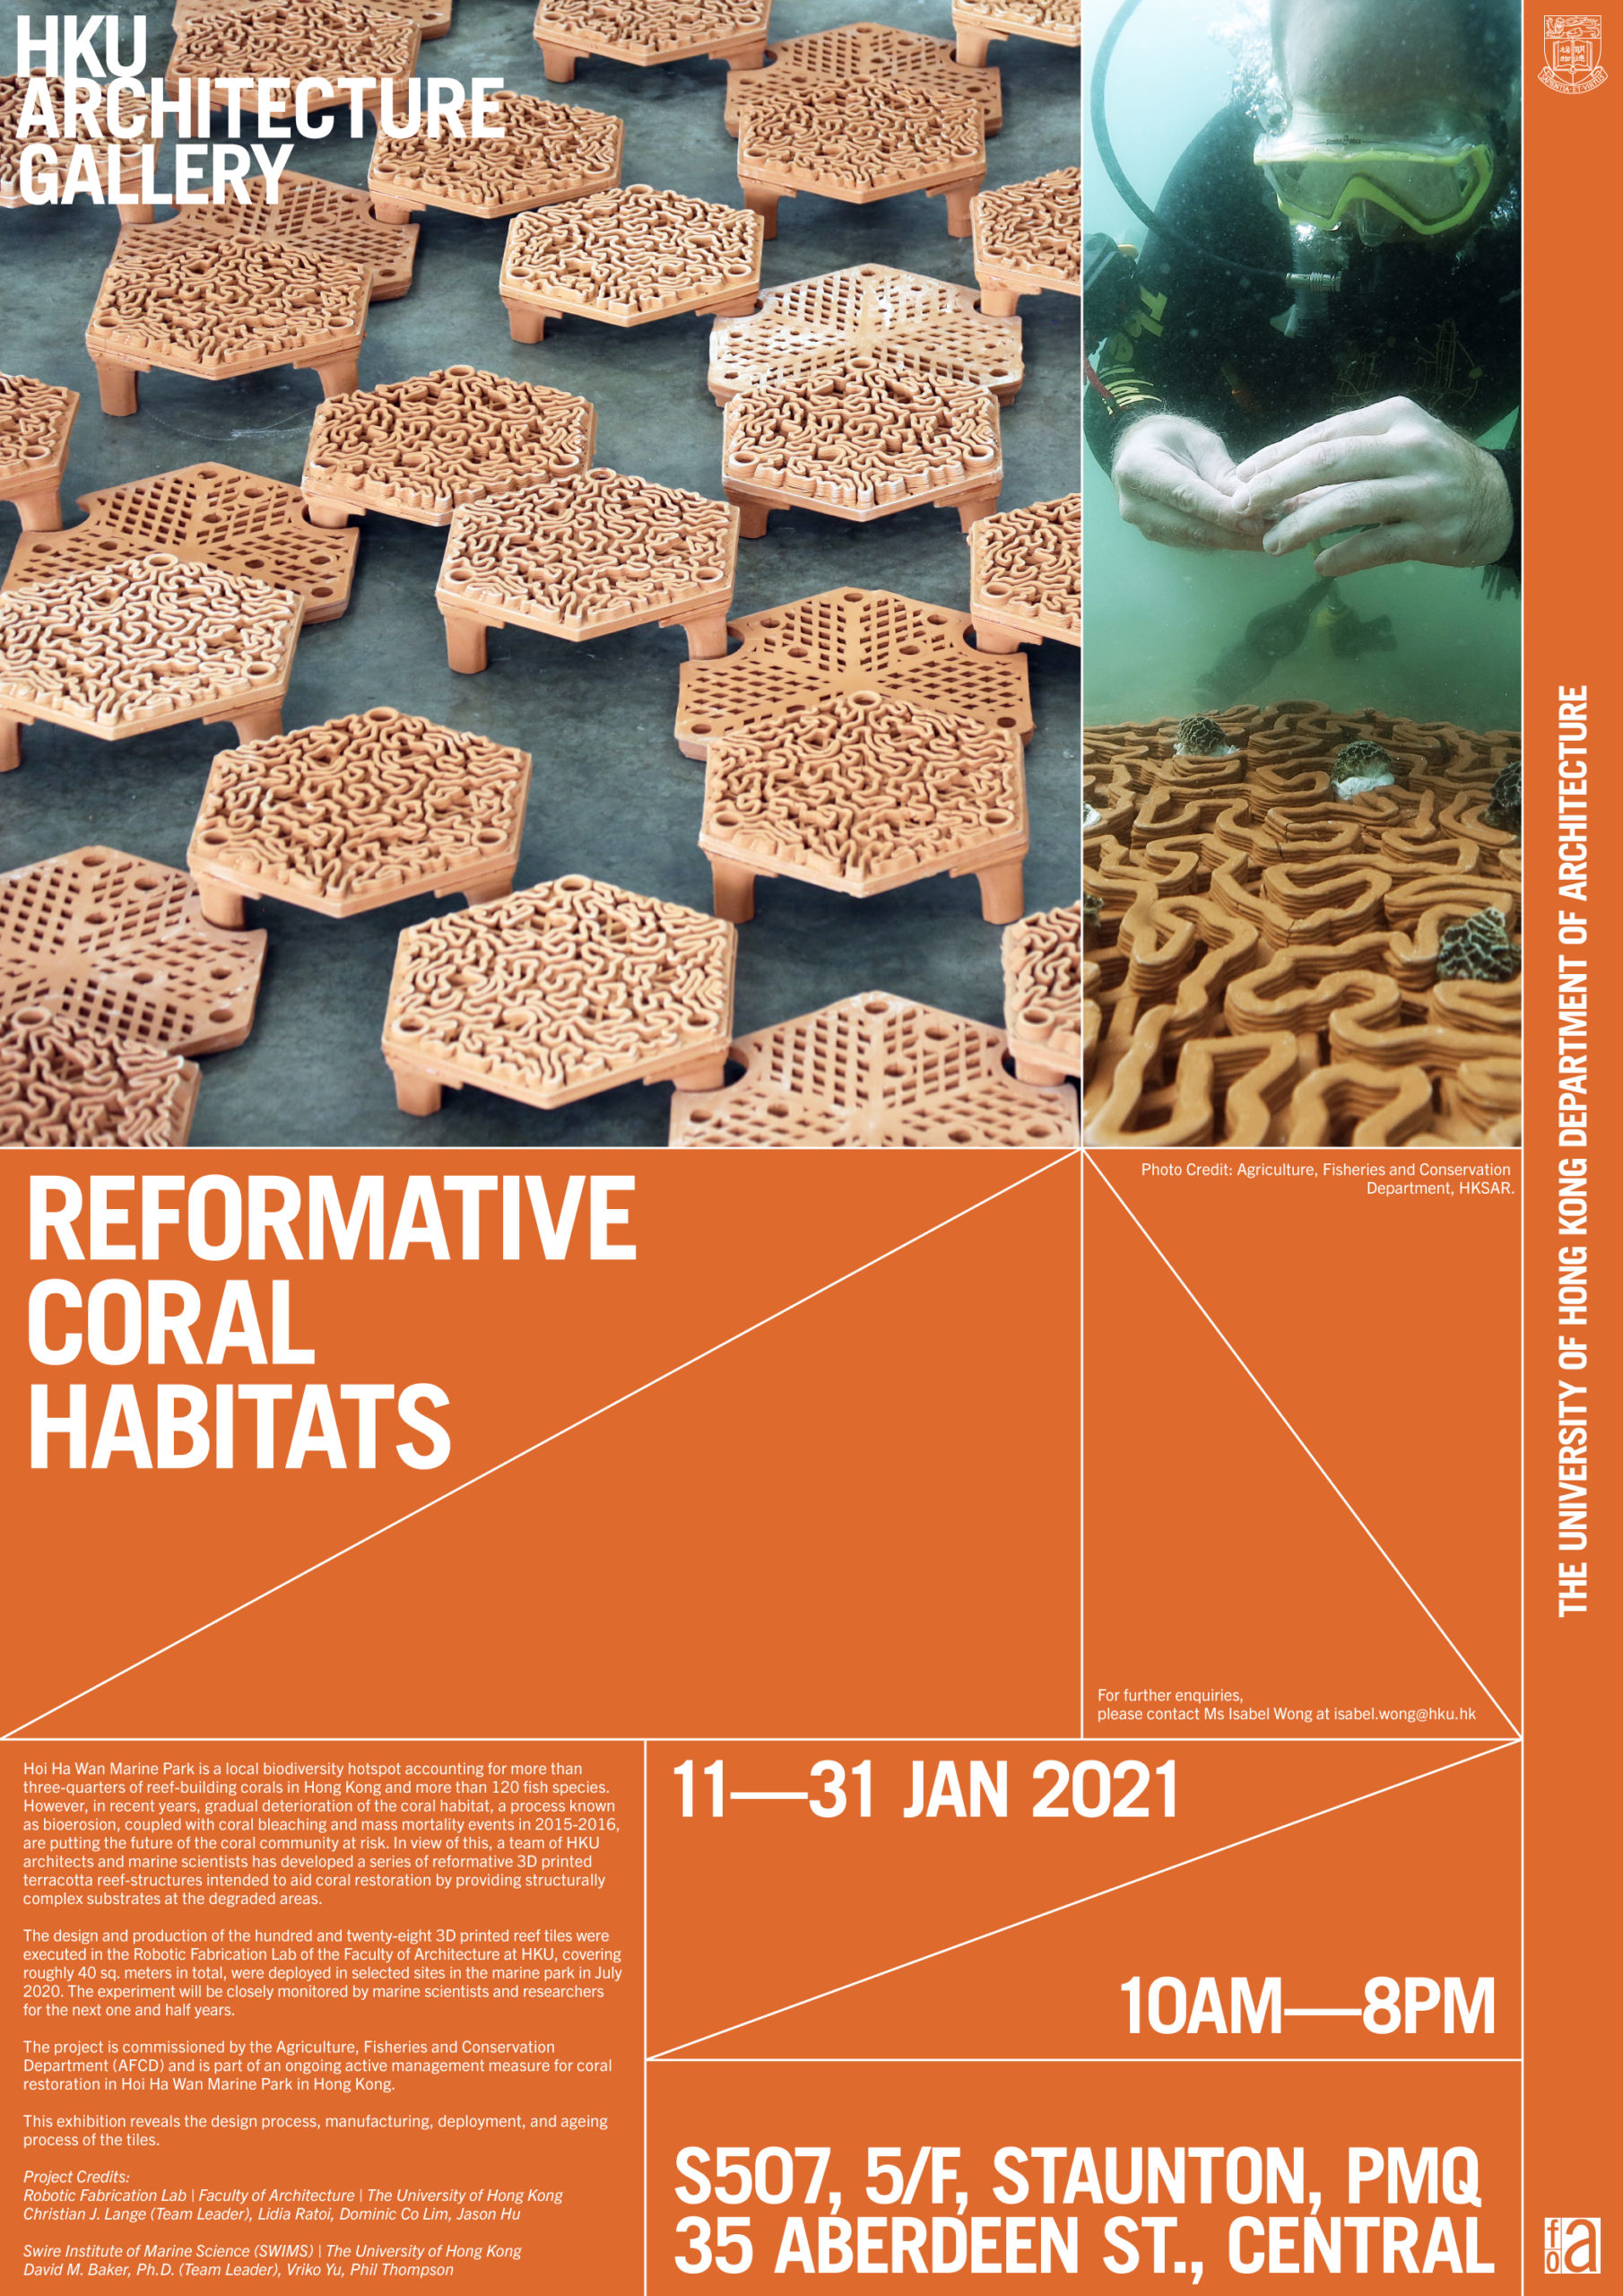 Christian J. Lange, autobryks3D, 3d printing, robotic fabrication, coral reef, artificial coral reef, coral restoration, terracotta architecture, 3d printe reefs, Hong Kong, clay printing